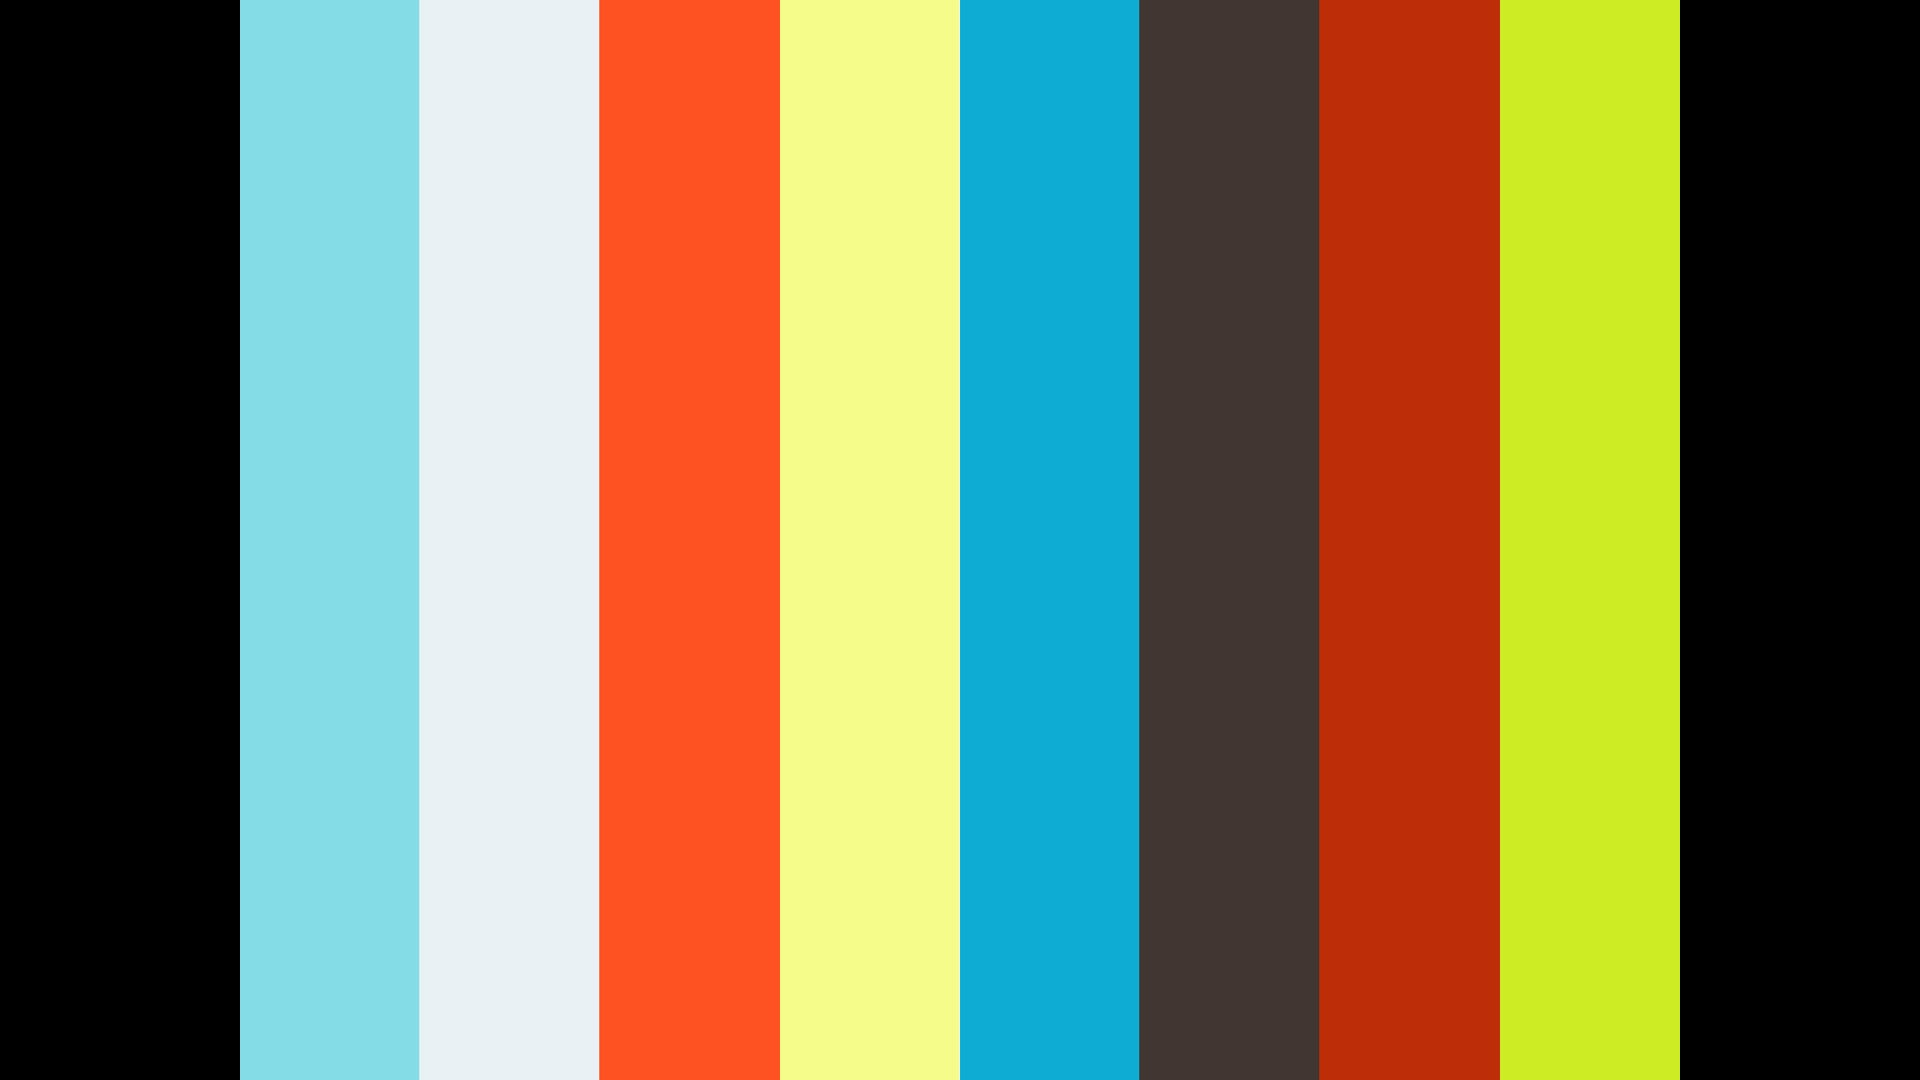 SJCSB Workshop: November 6, 2018